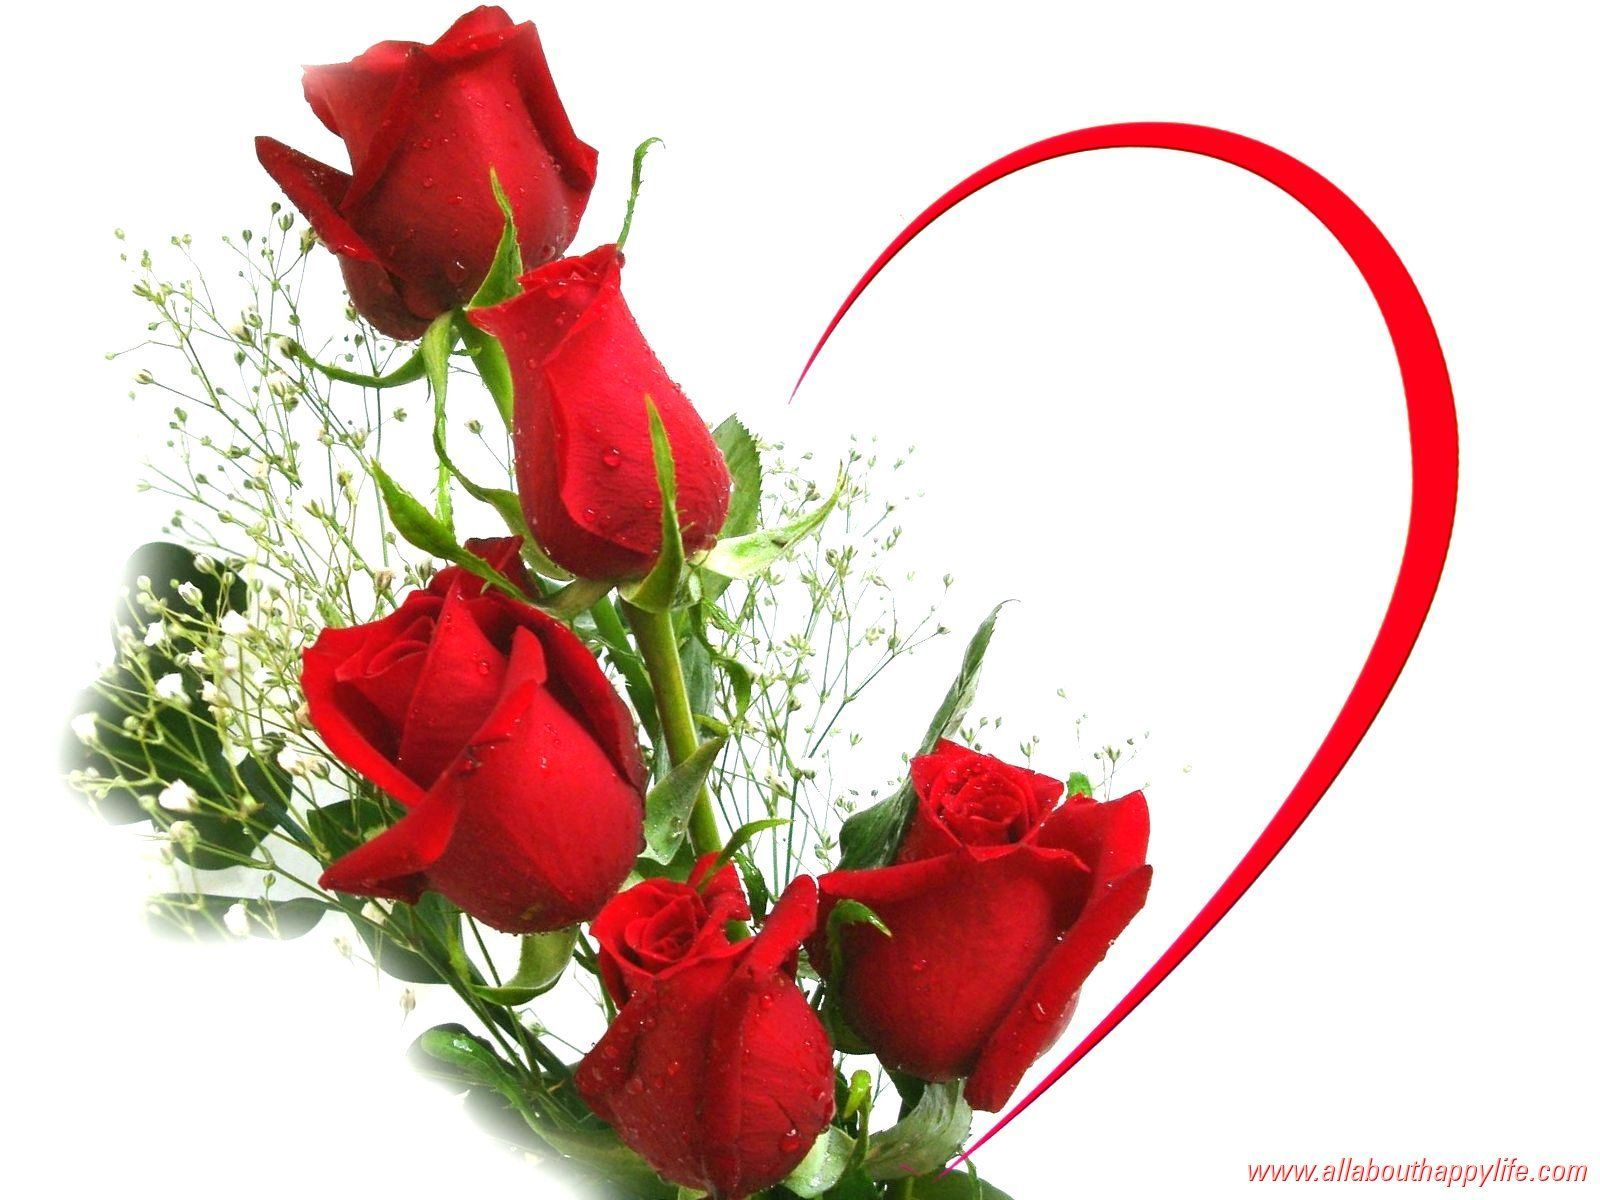 Red Rose Live Wallpaper Android Apps On Google Play 1600 1200 Red Roses Pics Wallpapers 39 Wallpa Red Roses Wallpaper Love Rose Images Beautiful Love Flowers